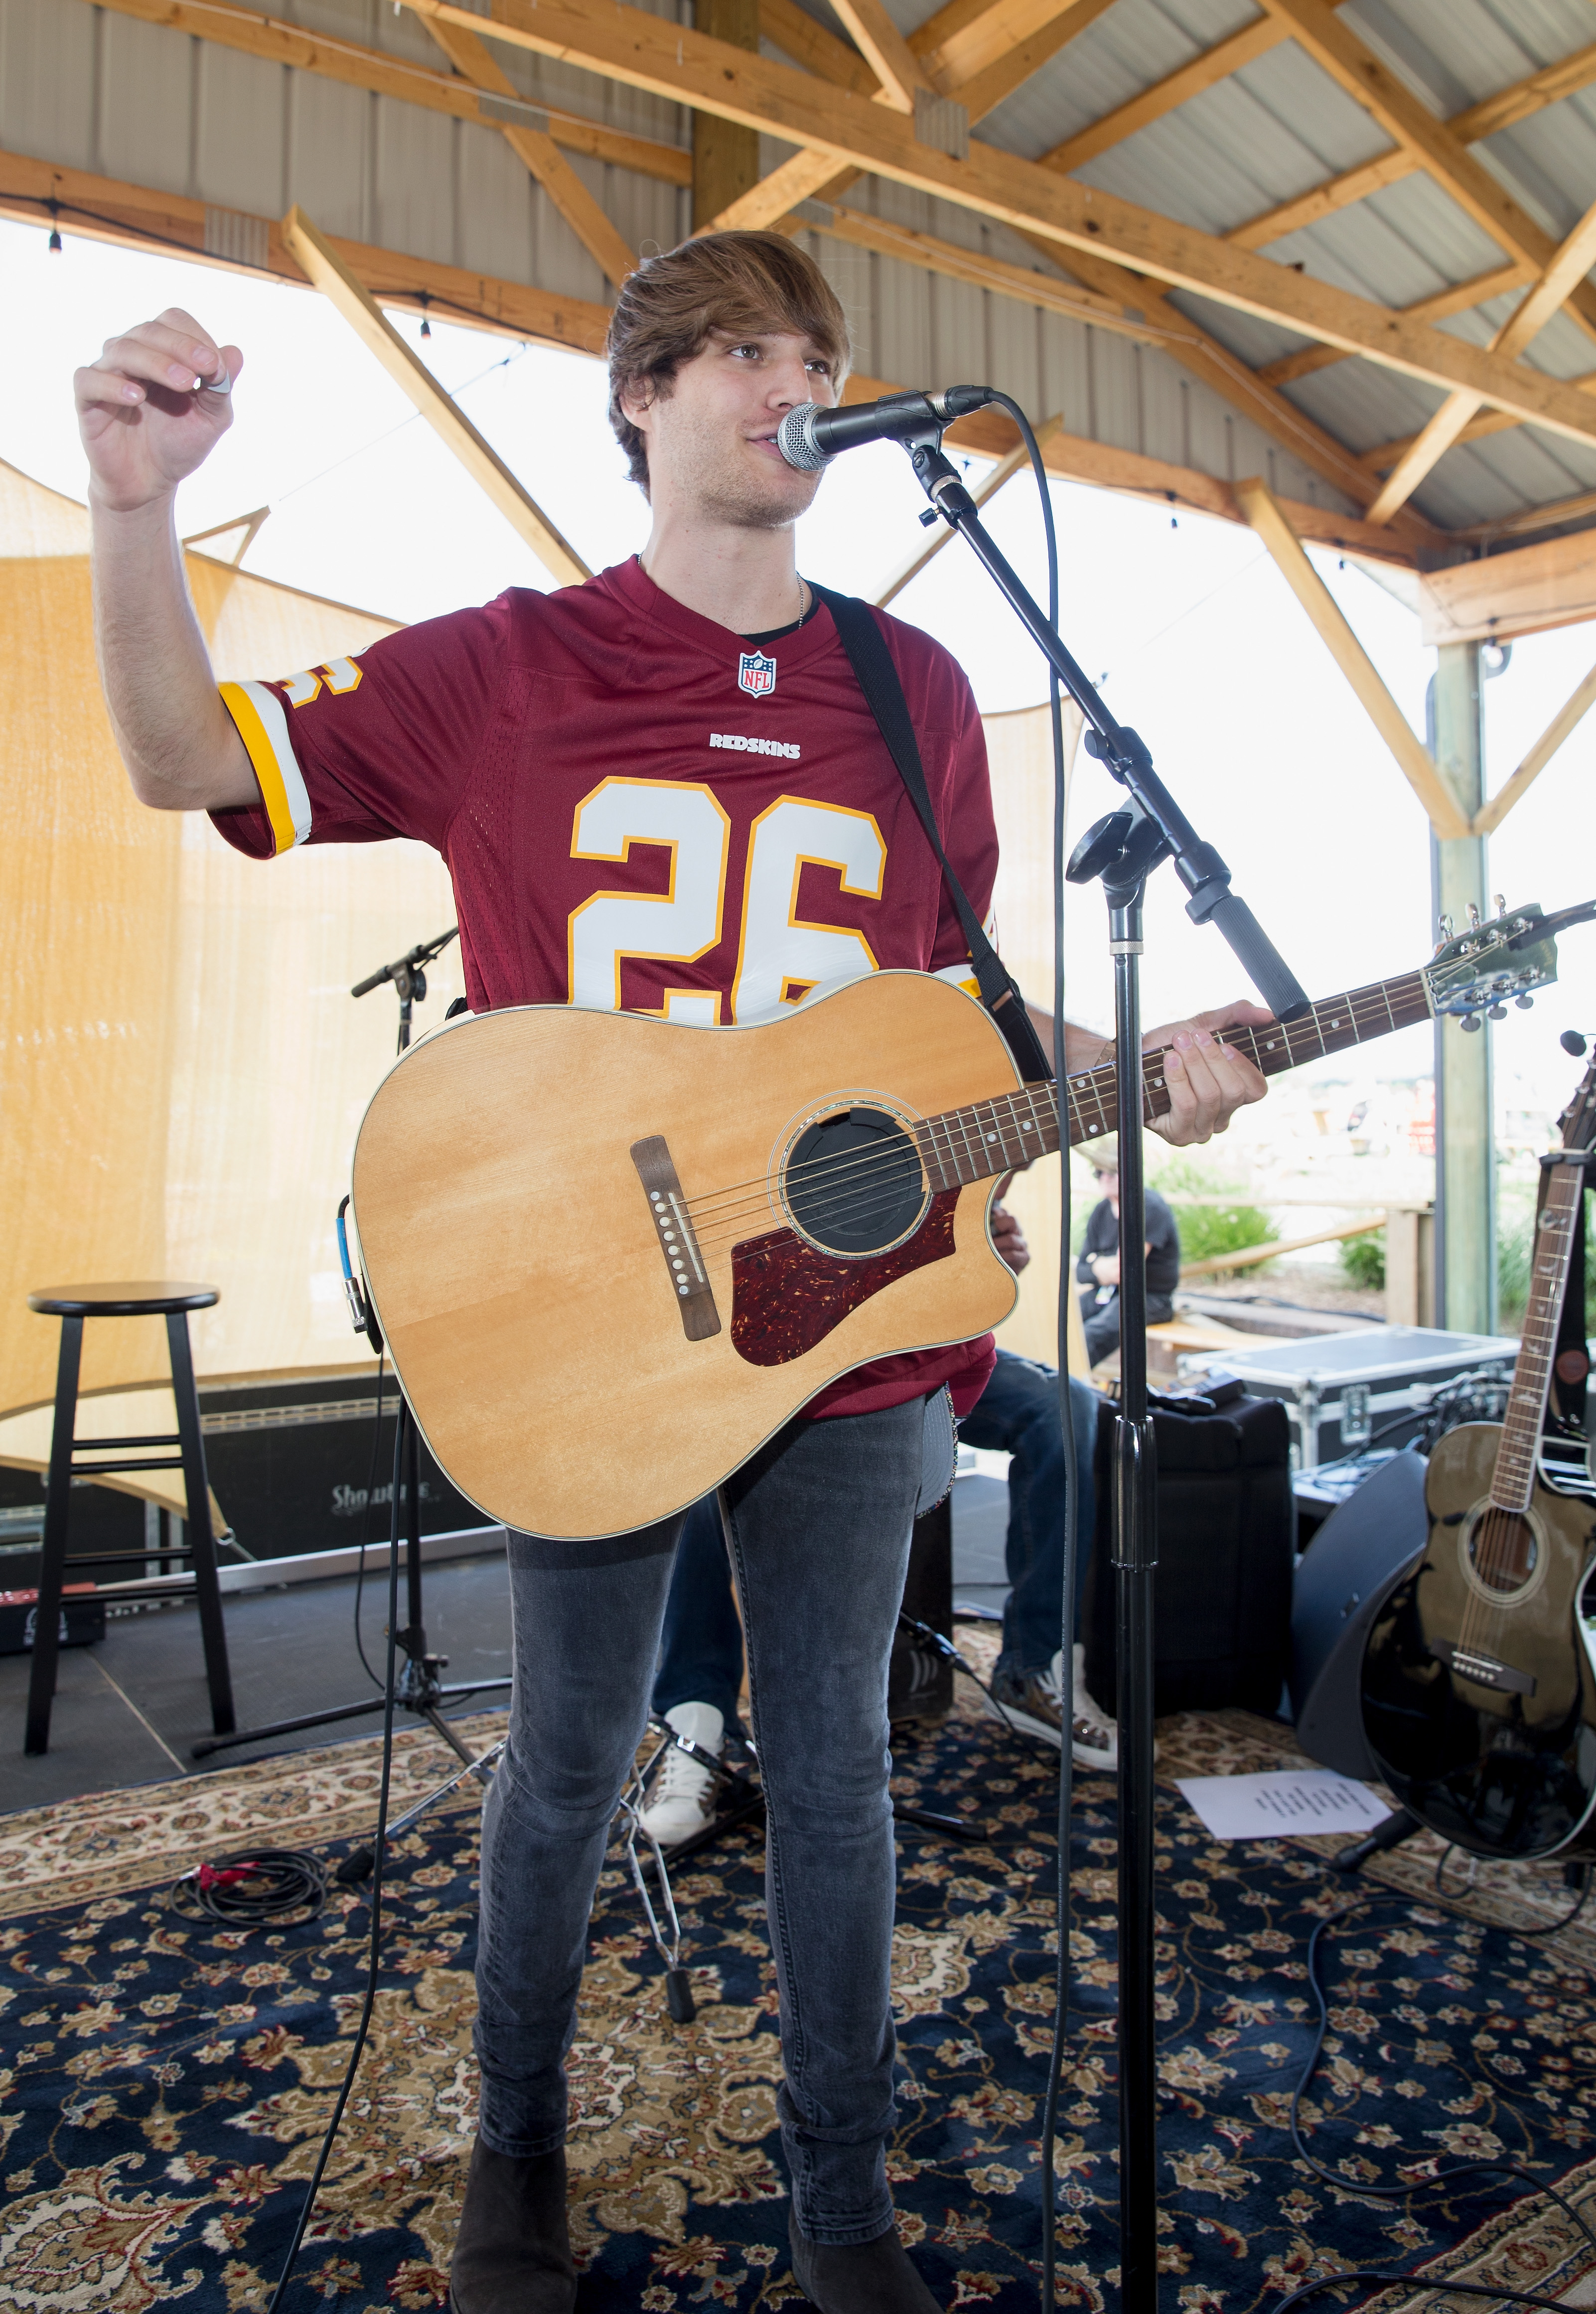 "This weekend, Pepsi and the Washington Redskins celebrated the beginning of the NFL season with a kickoff concert in Leesburg, Virginia, featuring country music duo LOCASH and rising star Michael Tyler. Several NFL alumni were in attendance, including former Washington Redskins Wide Receiver Santana Moss and Offensive Tackle Chris Samuels. Select guests who wore burgundy and gold also won tickets to the season opener against the Philadelphia Eagles. Pepsi launched their full 2017 NFL campaign ""The Fun Doesn't End Zone"" last week, marking the beginning of the new season and championing the NFL's new relaxed rules on end zone celebrations. ""The Fun Doesn't End Zone"" aims to connect fans to the fun all season long through a host of off-the-field moments, promotions, pre-game festivities and entertaining content featuring NFL athletes. (Image: Tasos Katopodis/Getty Images for Pepsi)"